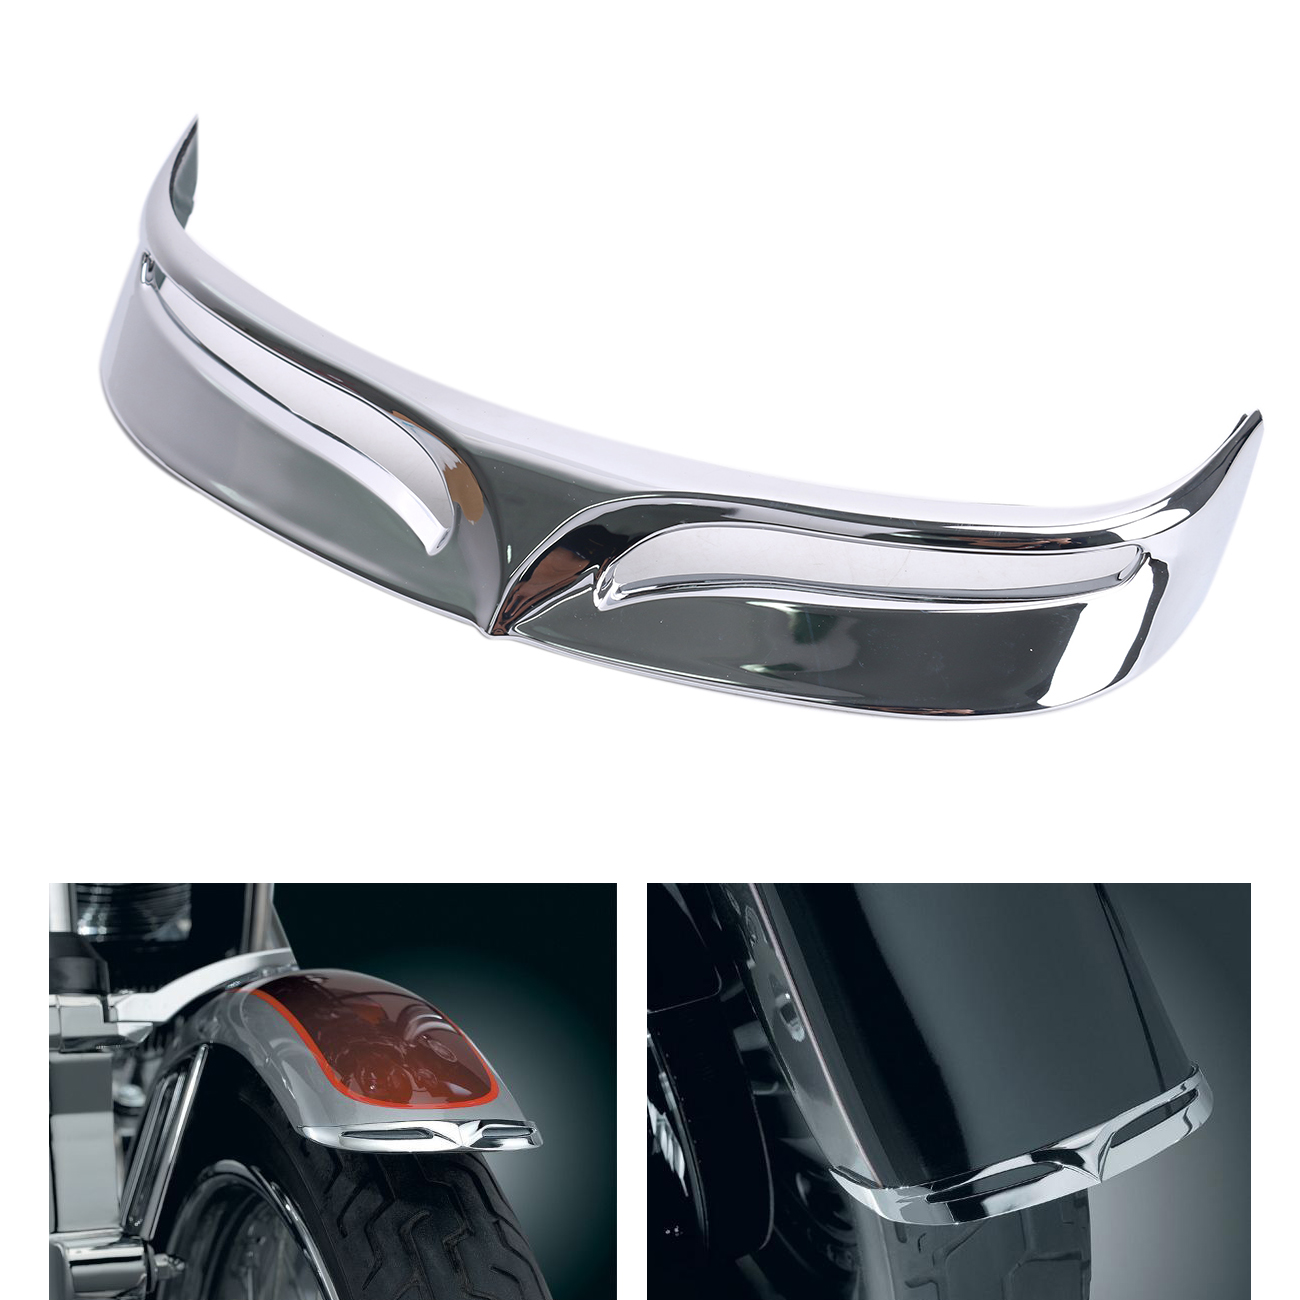 Motorcycle Chrome Fender Tips Trailing Edge Rear Wheel Tire Shell Cover For Harley Softail Fat Boy / Fatboy FLSTF FLSTFB #MBT236 motorcycle chrome fender tips trailing edge rear wheel tire shell cover for harley softail fat boy fatboy flstf flstfb mbt236